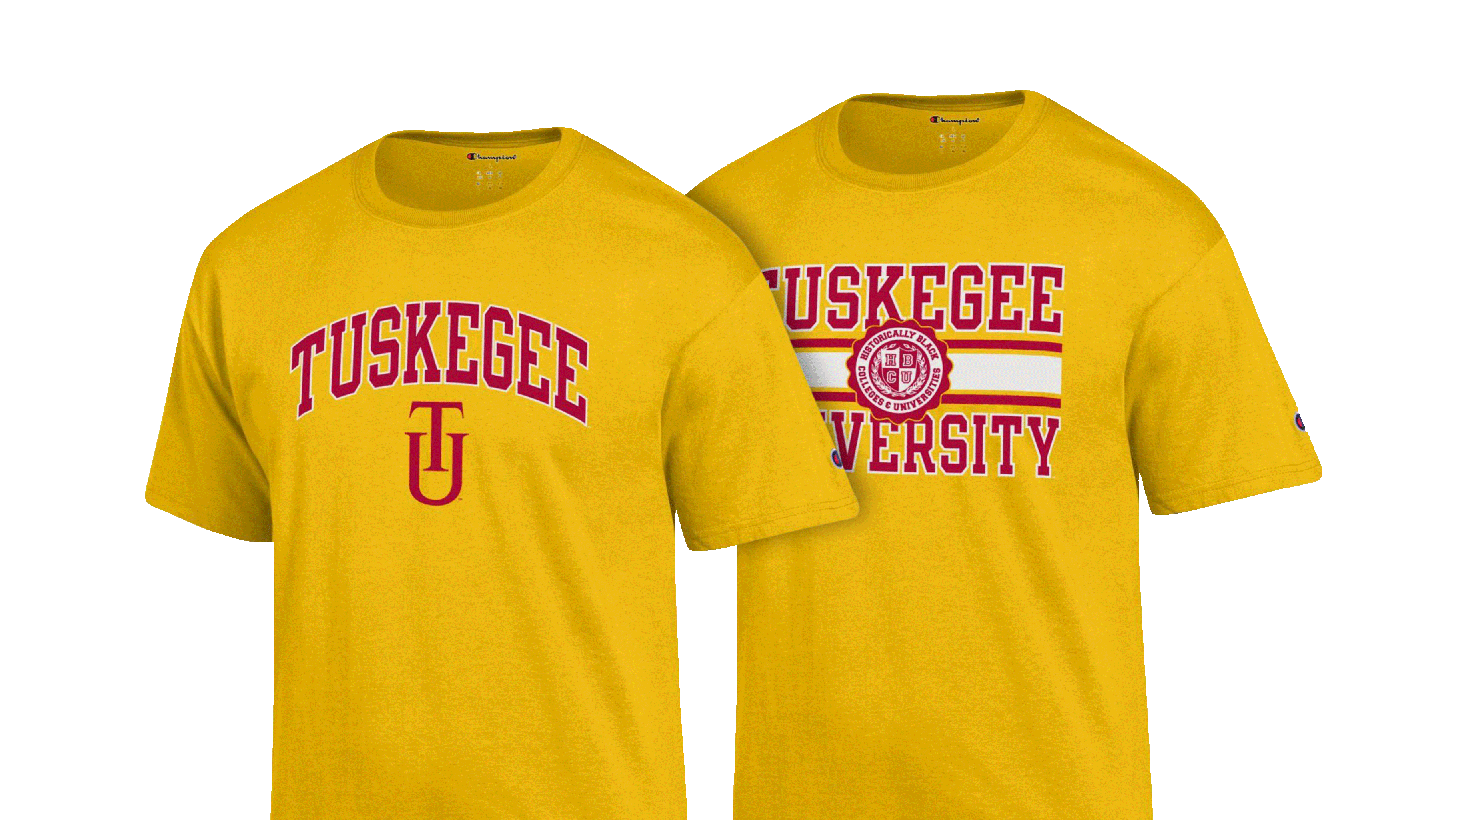 e279f8c3 Tuskegee University Bookstore Apparel, Merchandise, & Gifts